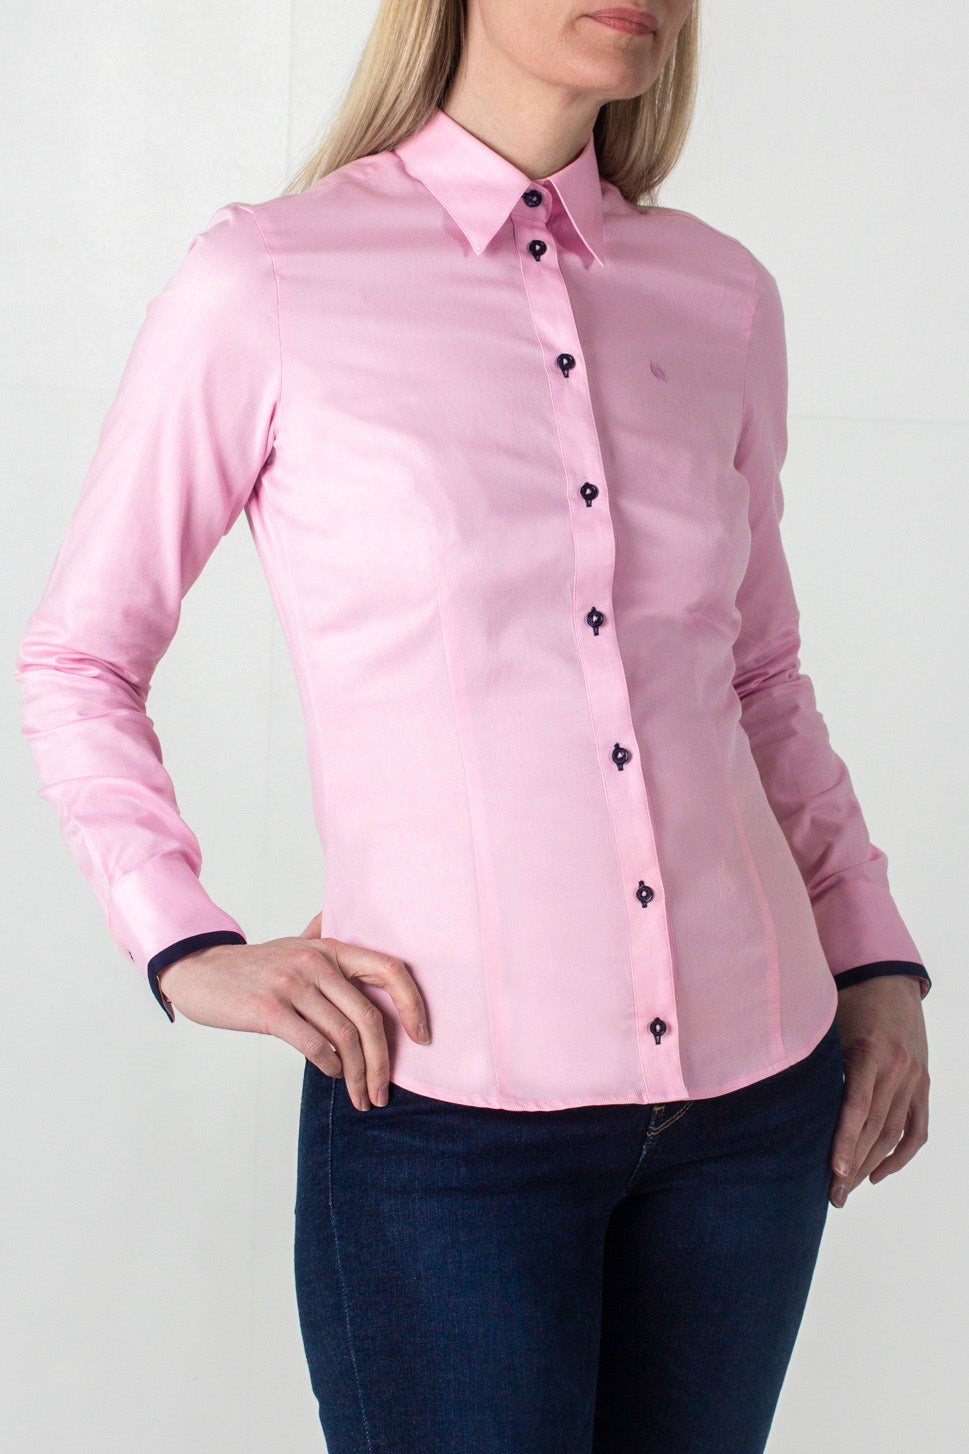 FRIGG ORIGINAL SLIM FIT SHIRT W/EDGE DETAIL